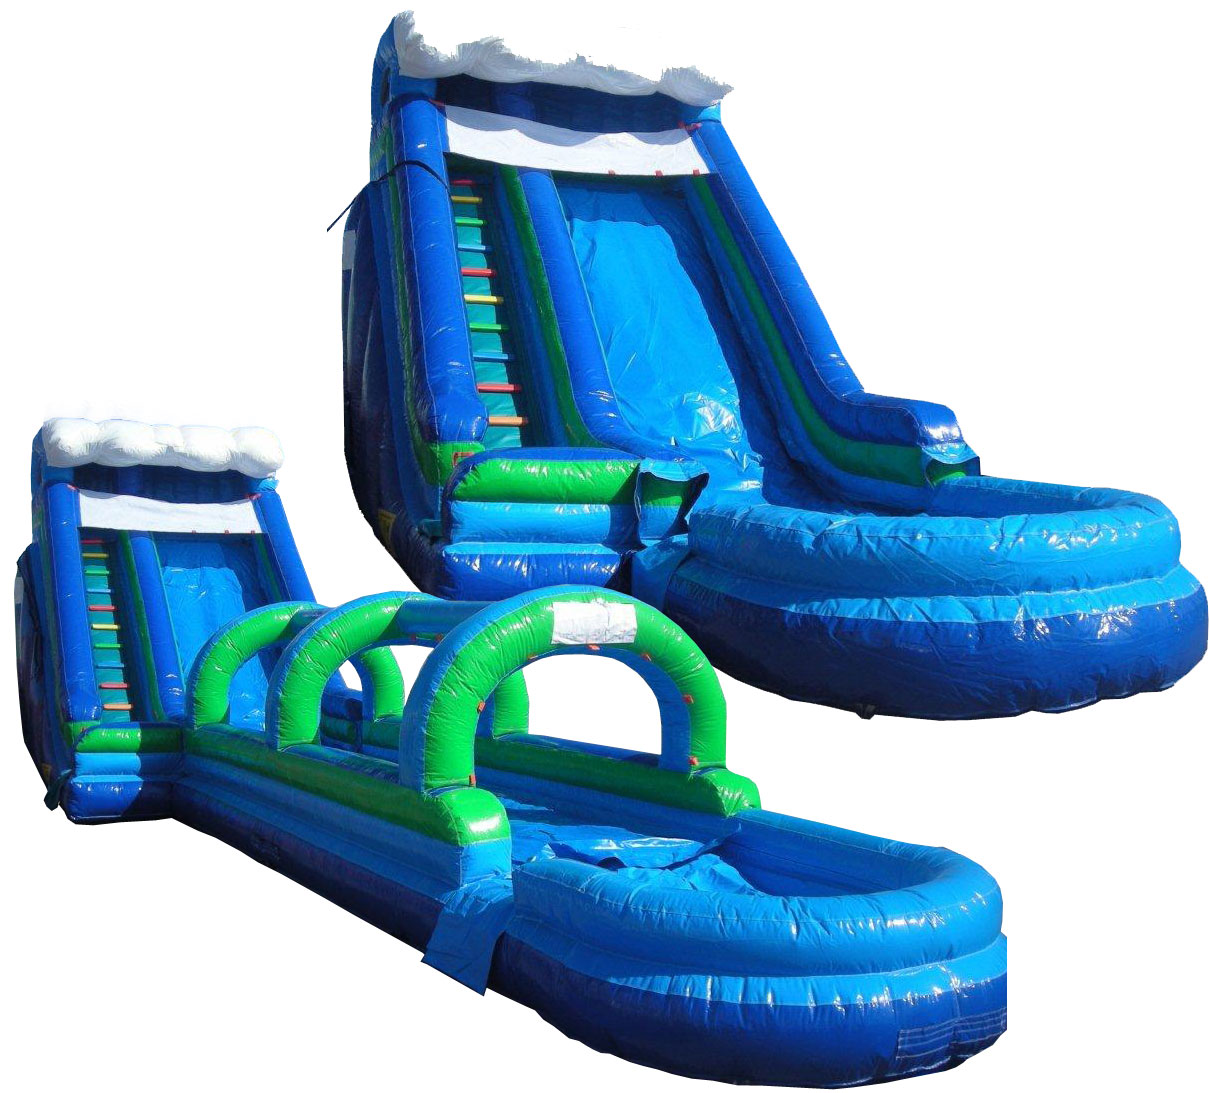 18' Wave Super Water Slide w/ Slip N' Slide